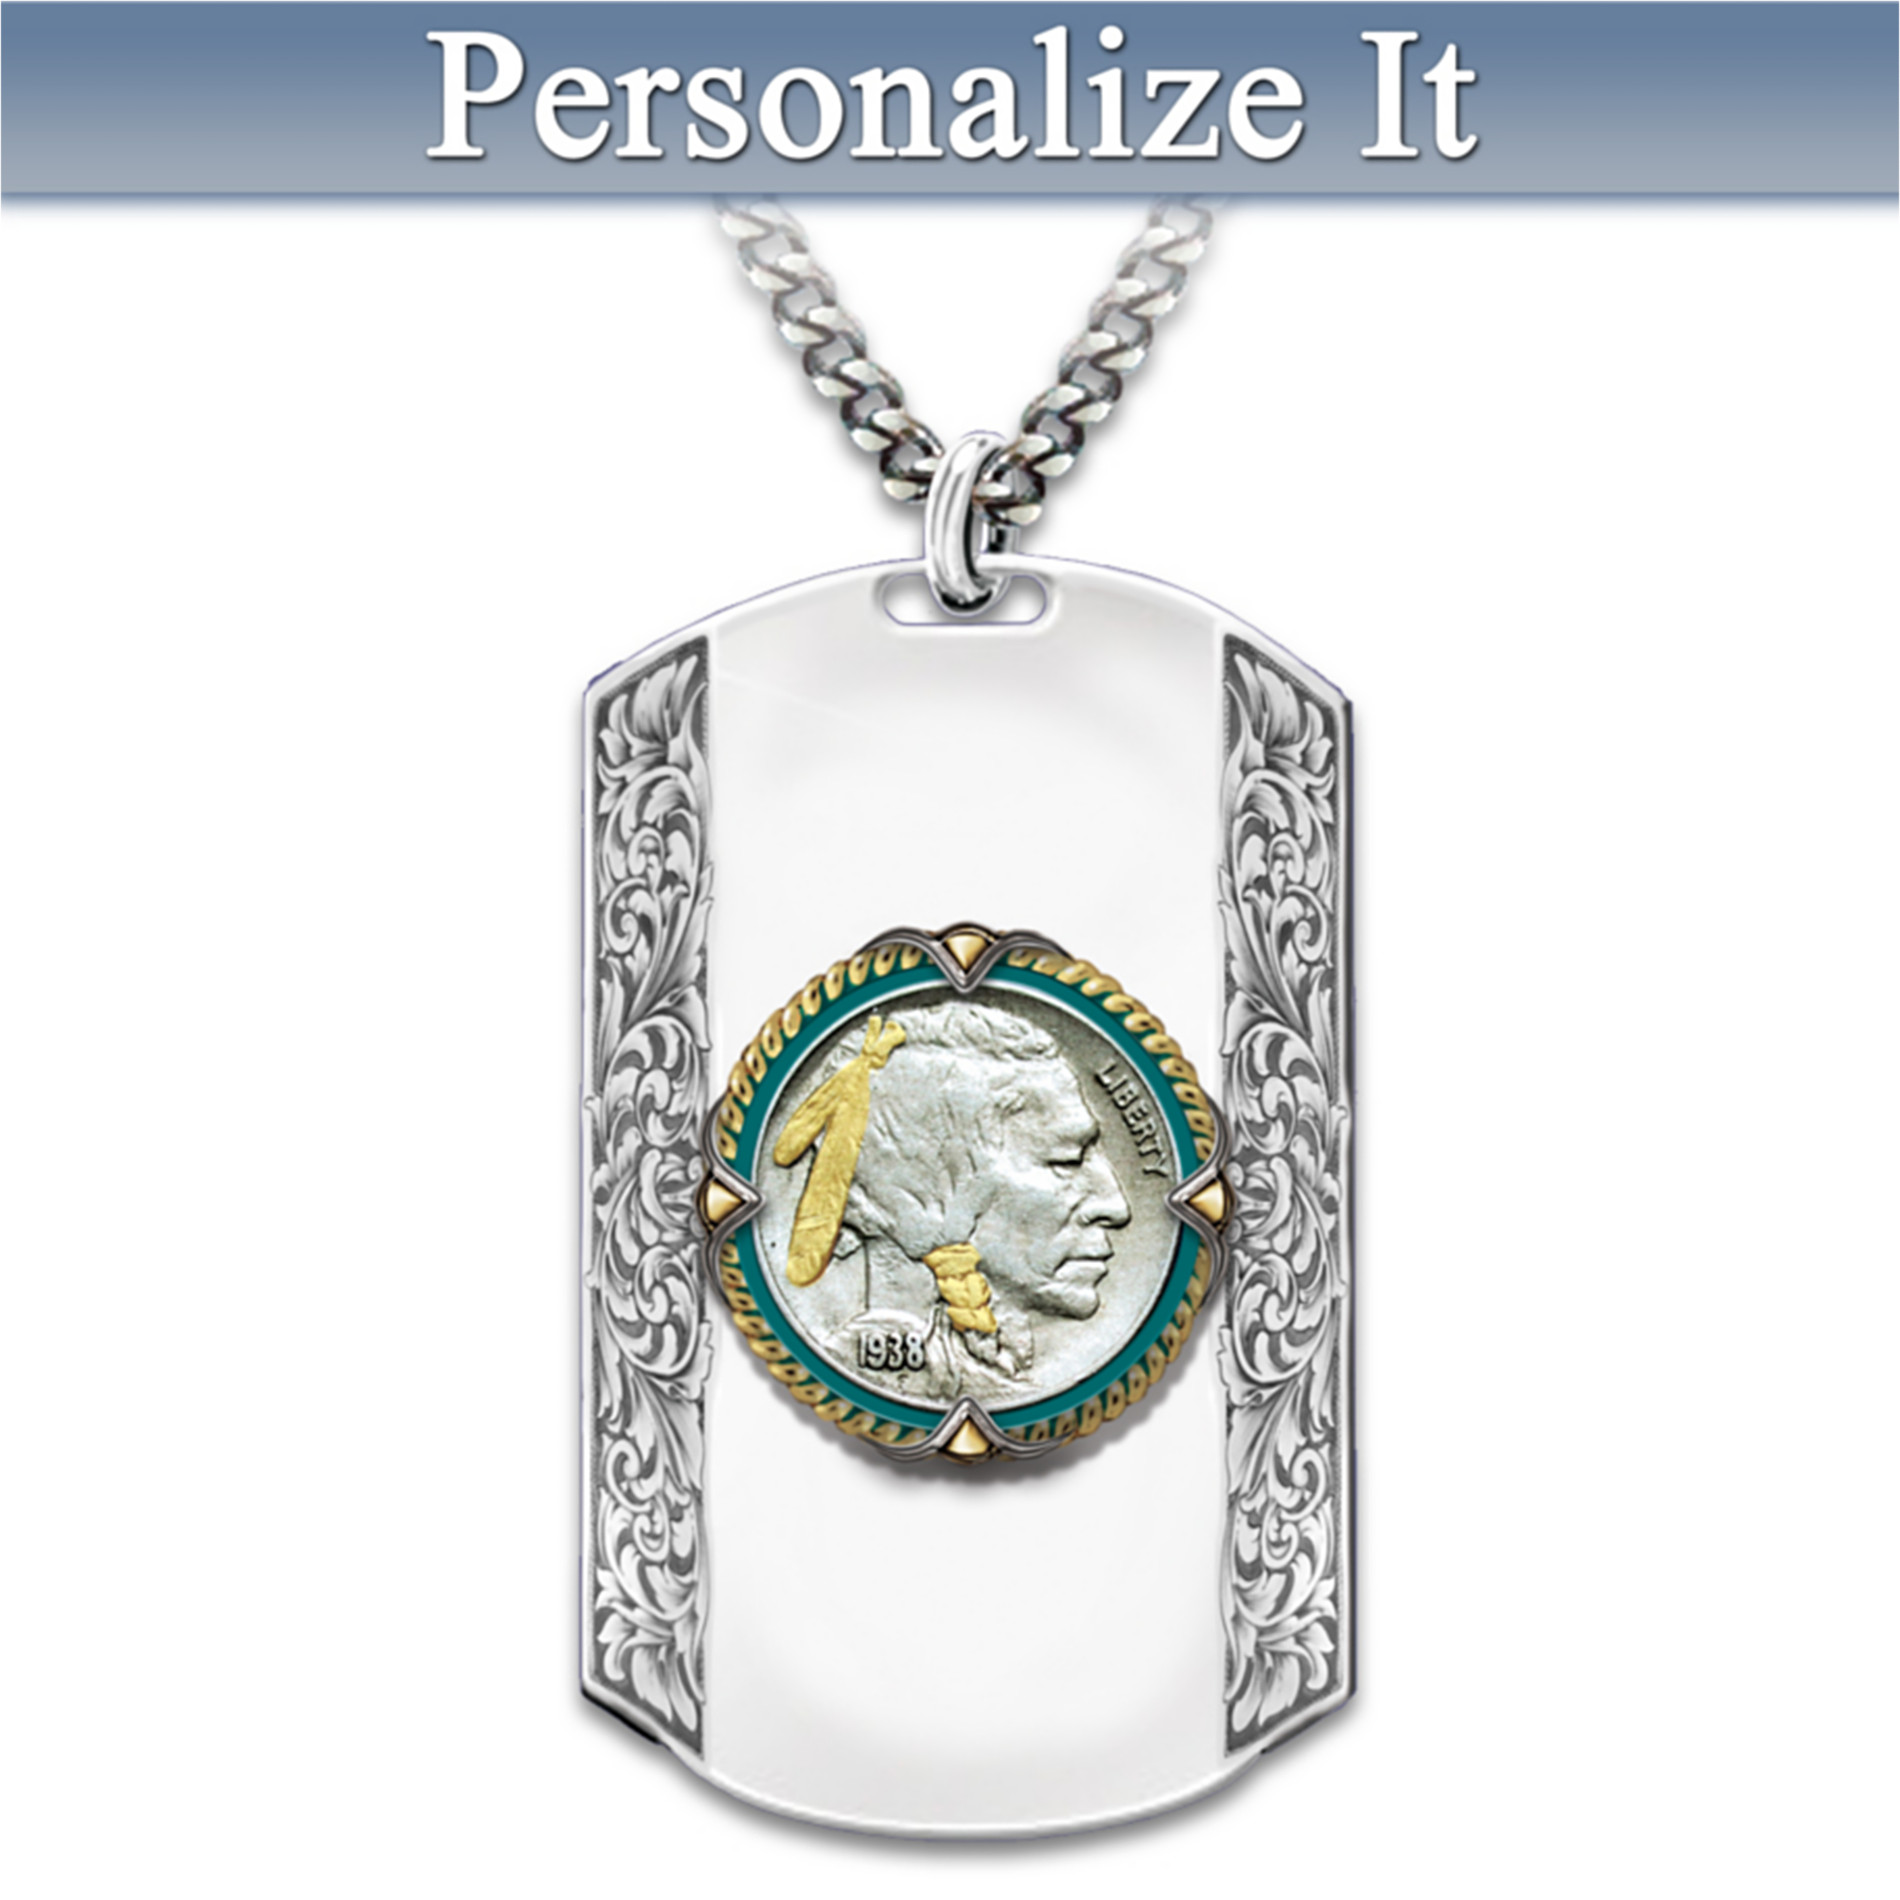 Bradford Authenticated Men's Necklace: Spirit Of The West Personalized Dog Tag Pendant at Sears.com